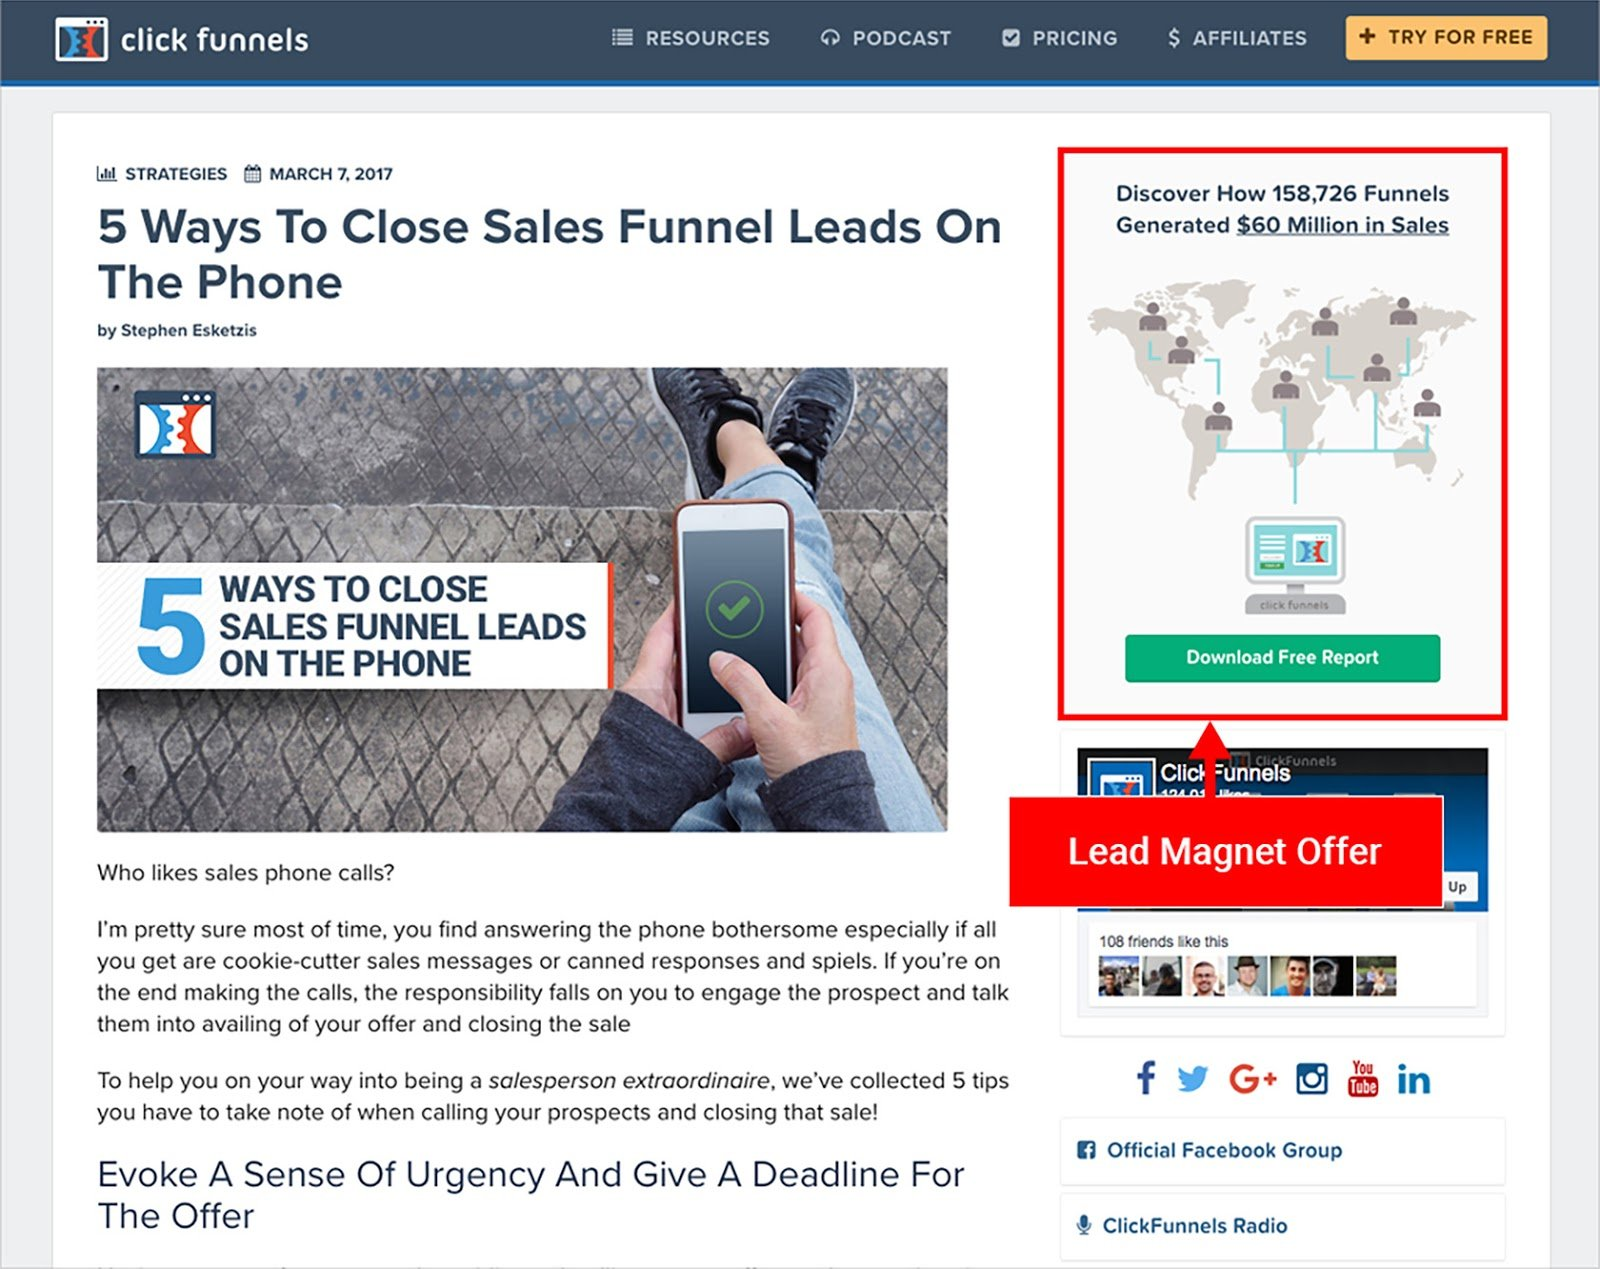 Image of an example from ClickFunnel conversion funnel